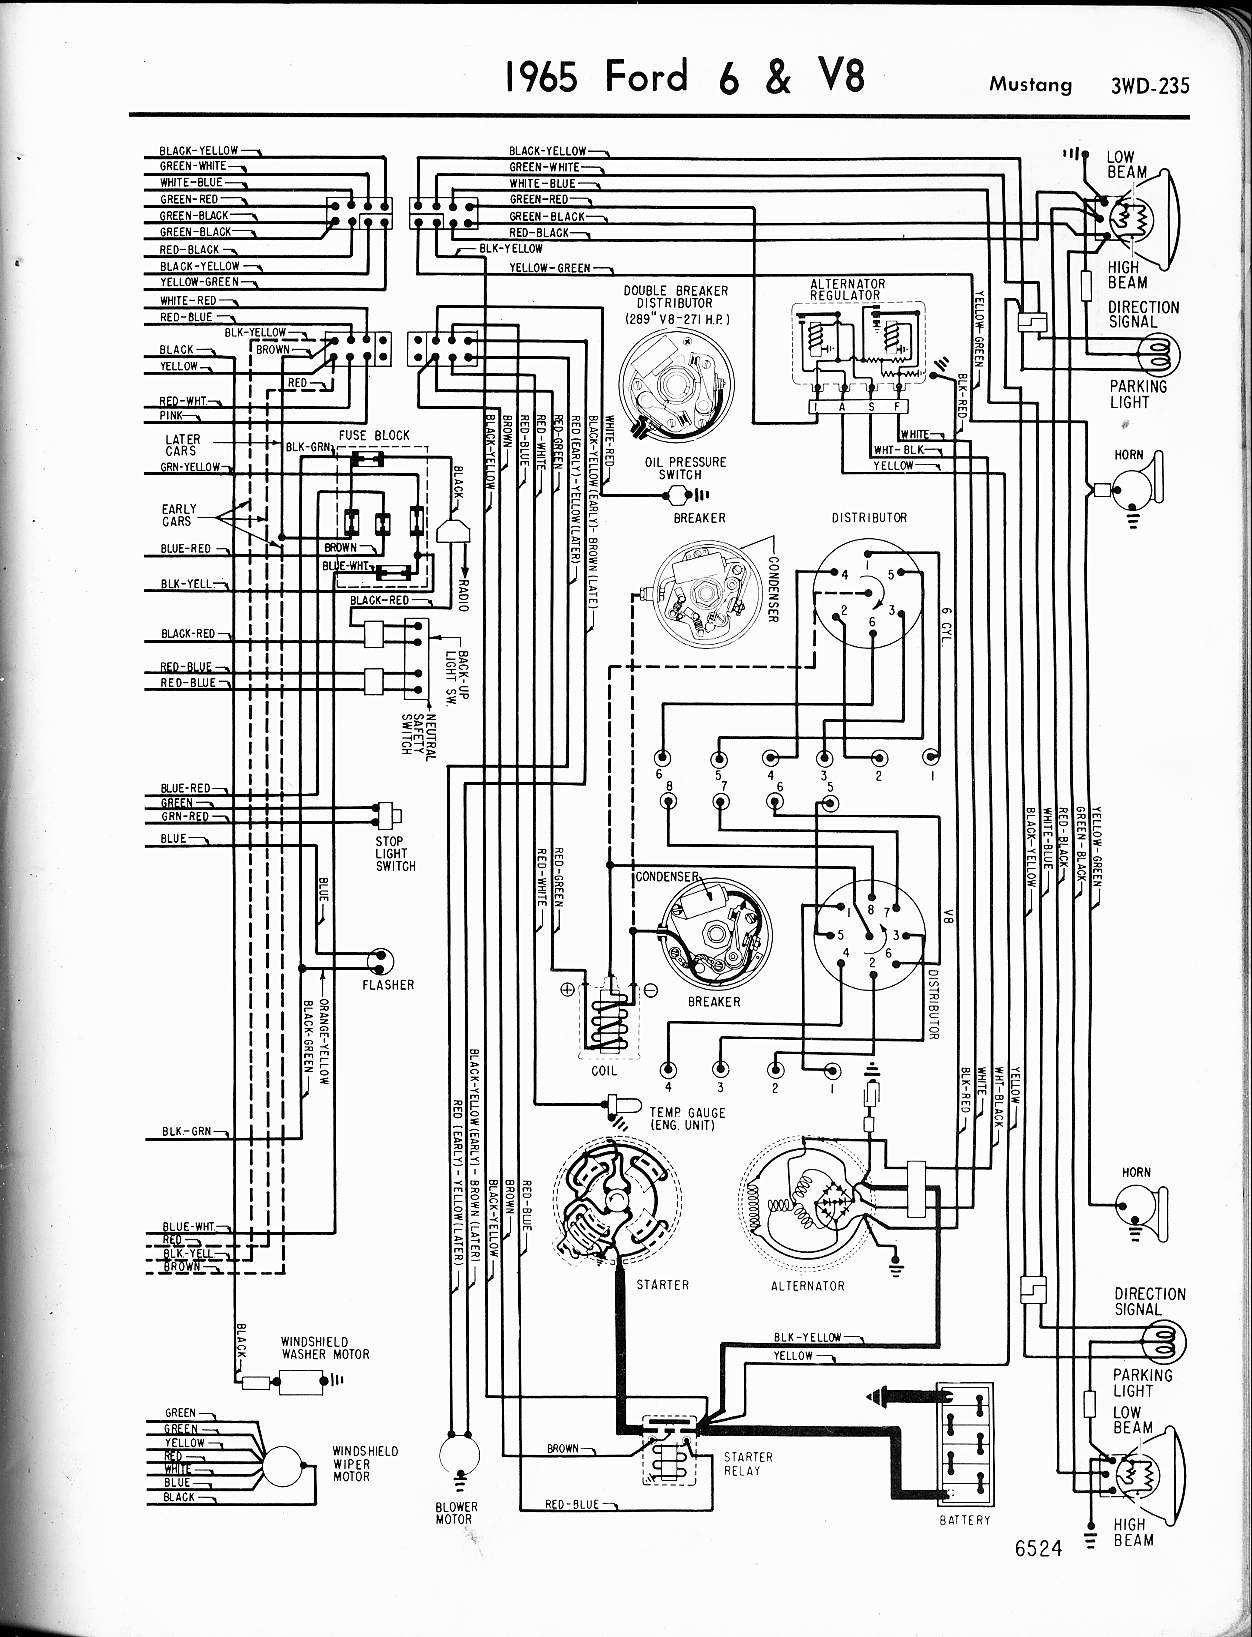 1969 Ford 302 Alternator Wiring Diagram Library 1968 F250 65 Mustang 2 Drawing B